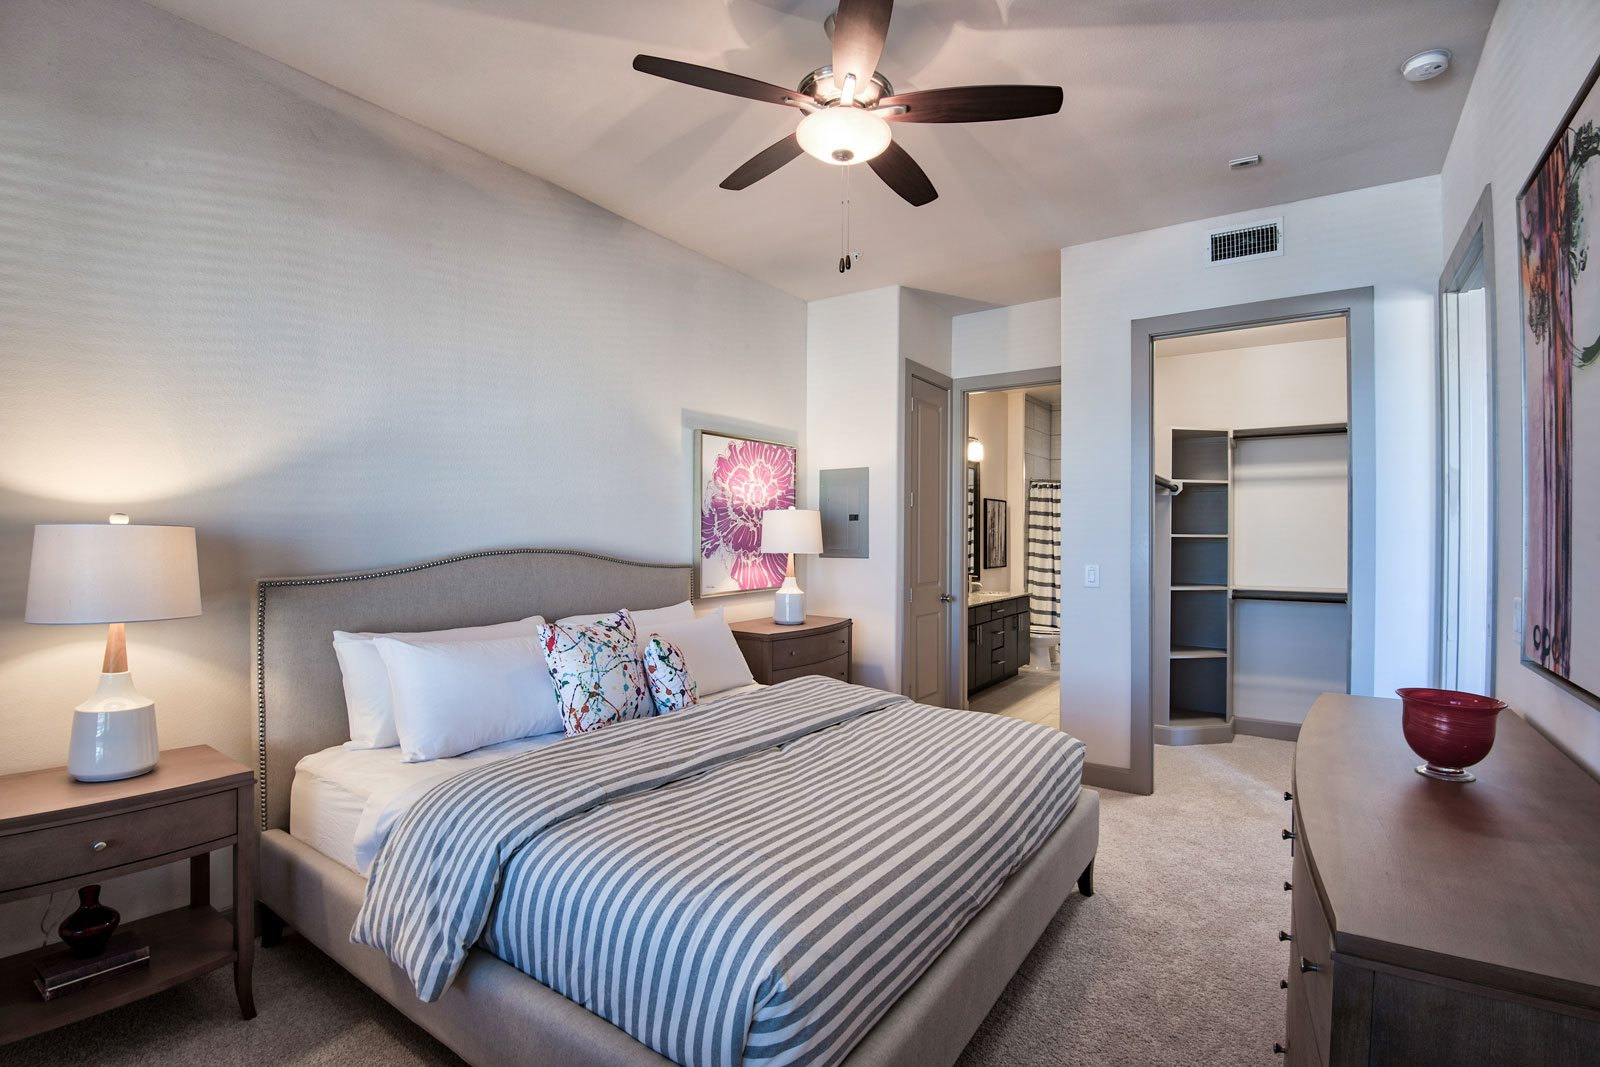 Master bedrooms with Attached Bathrooms and Walk-In Closets at Midtown Houston by Windsor, Texas, 77002